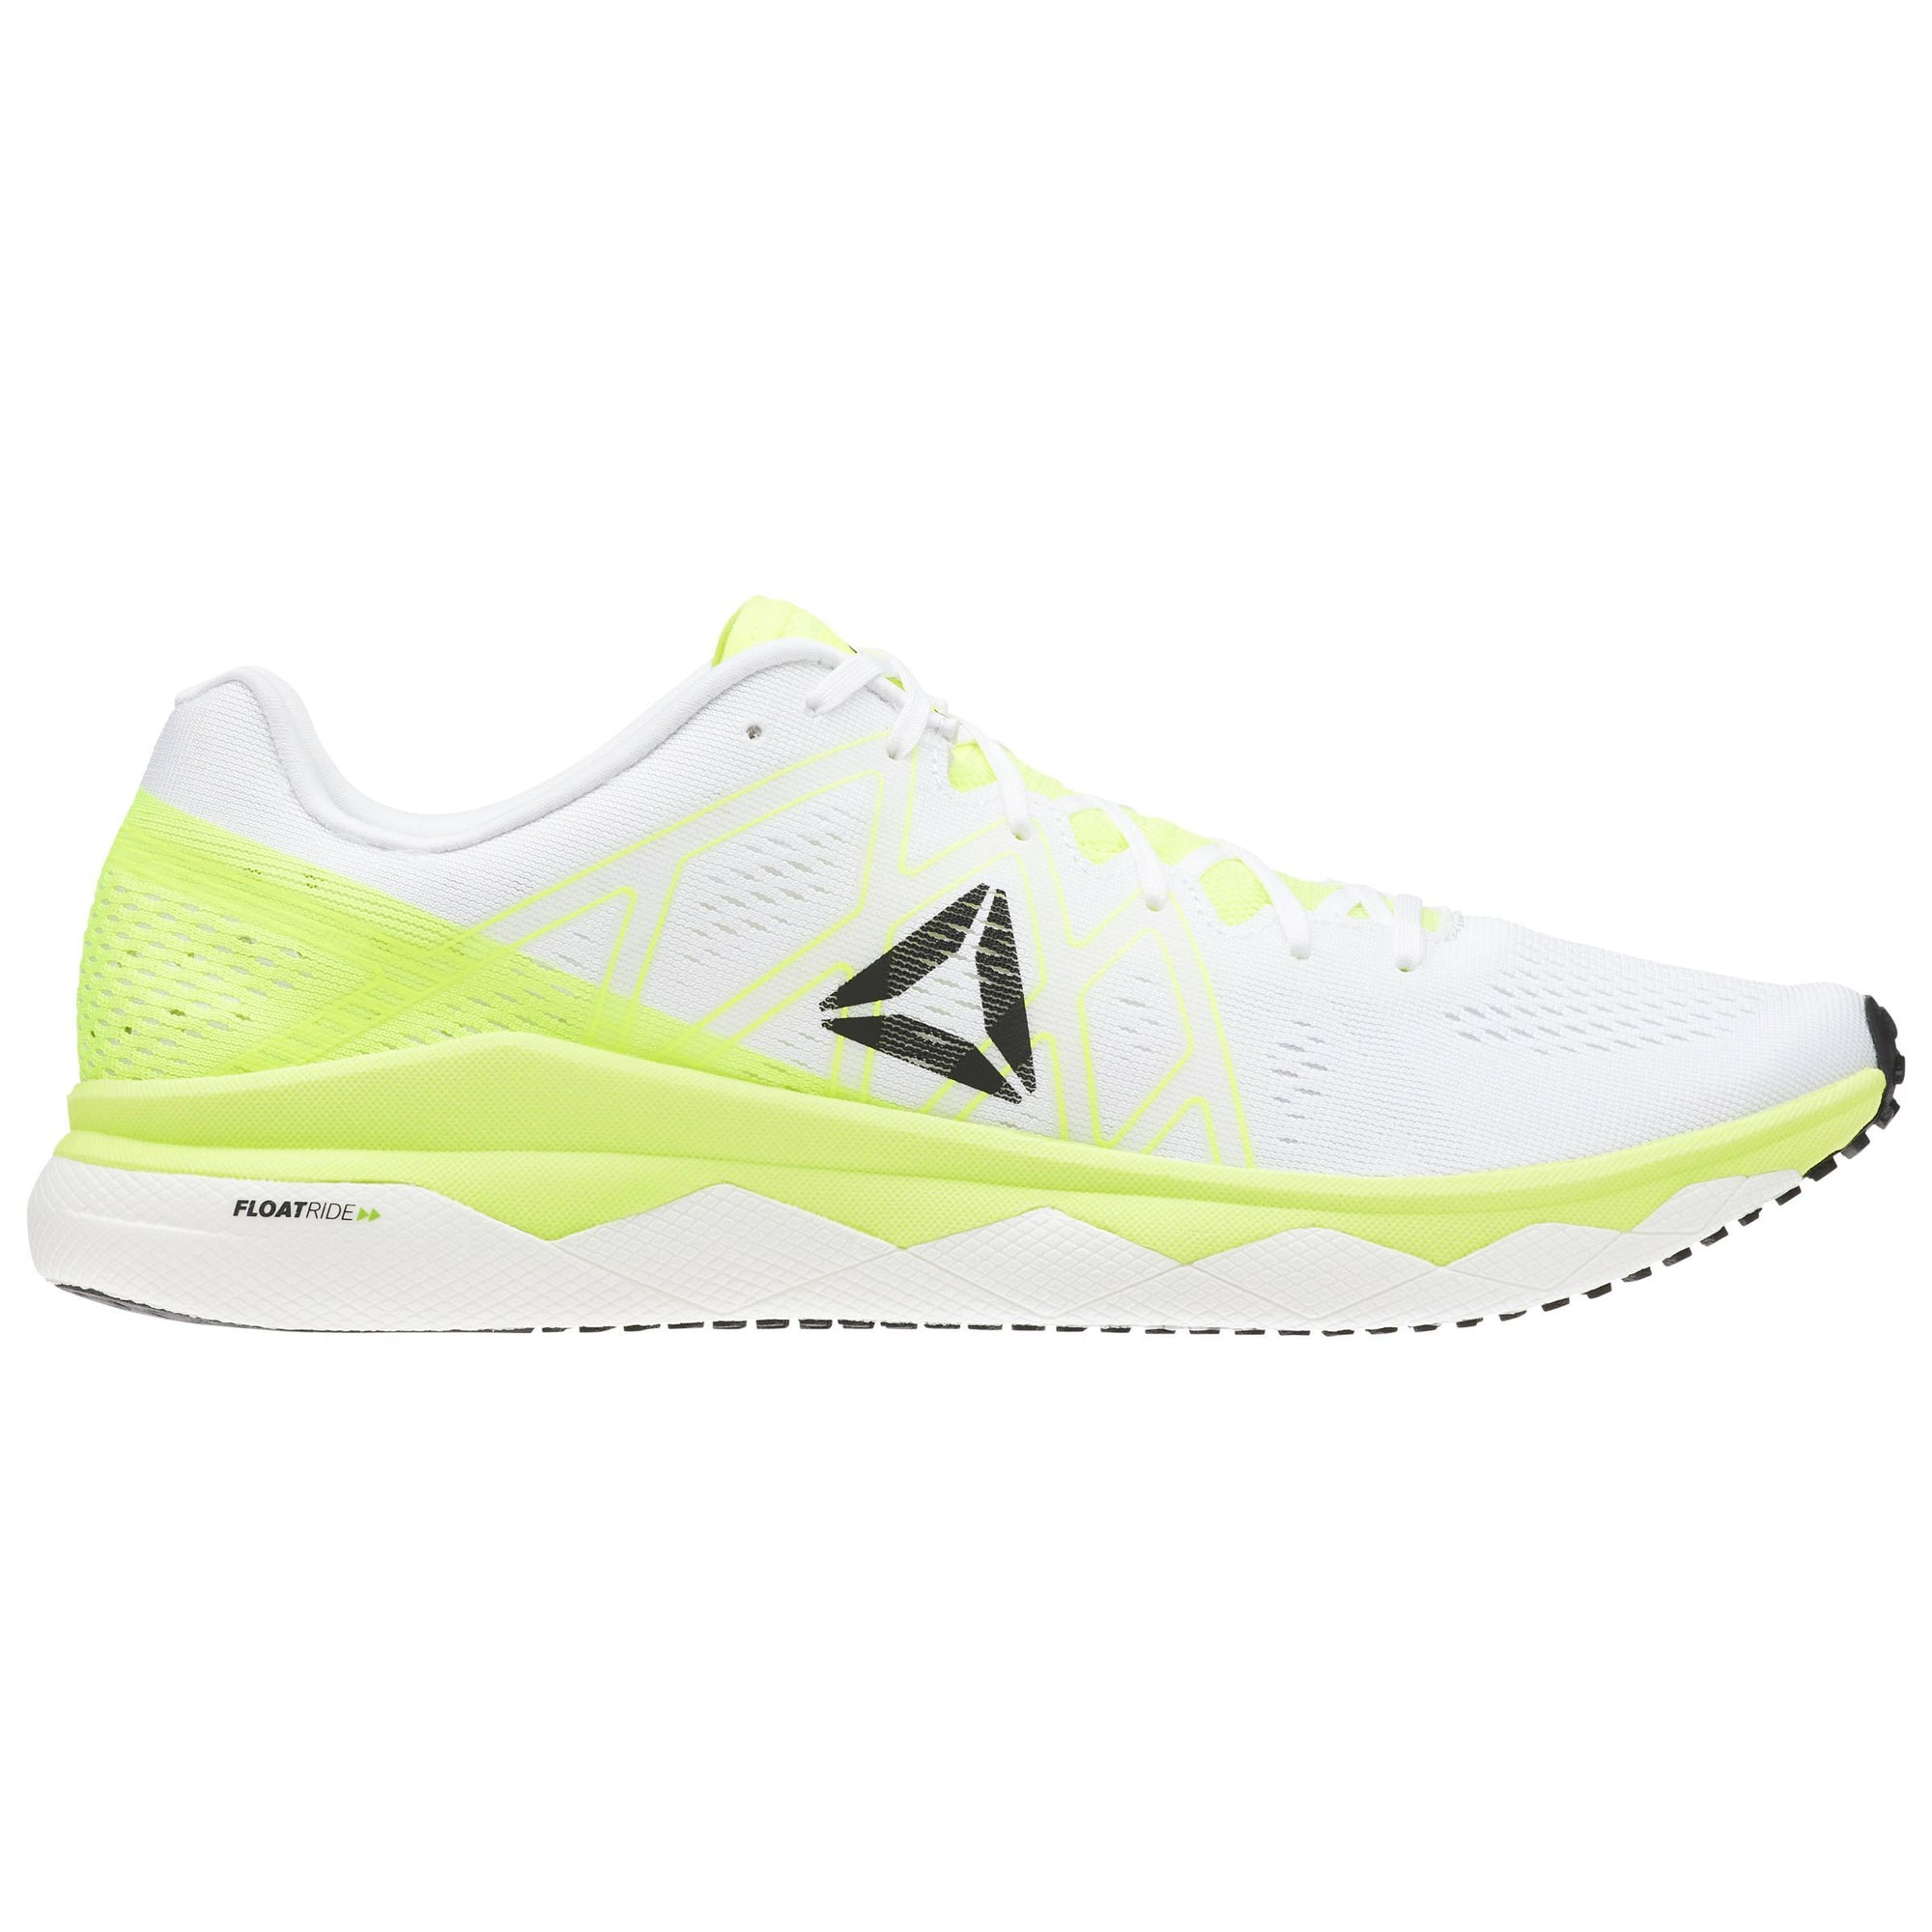 31d8ced5590 Reebok. Men Floatride Run Fast Running Shoe ...